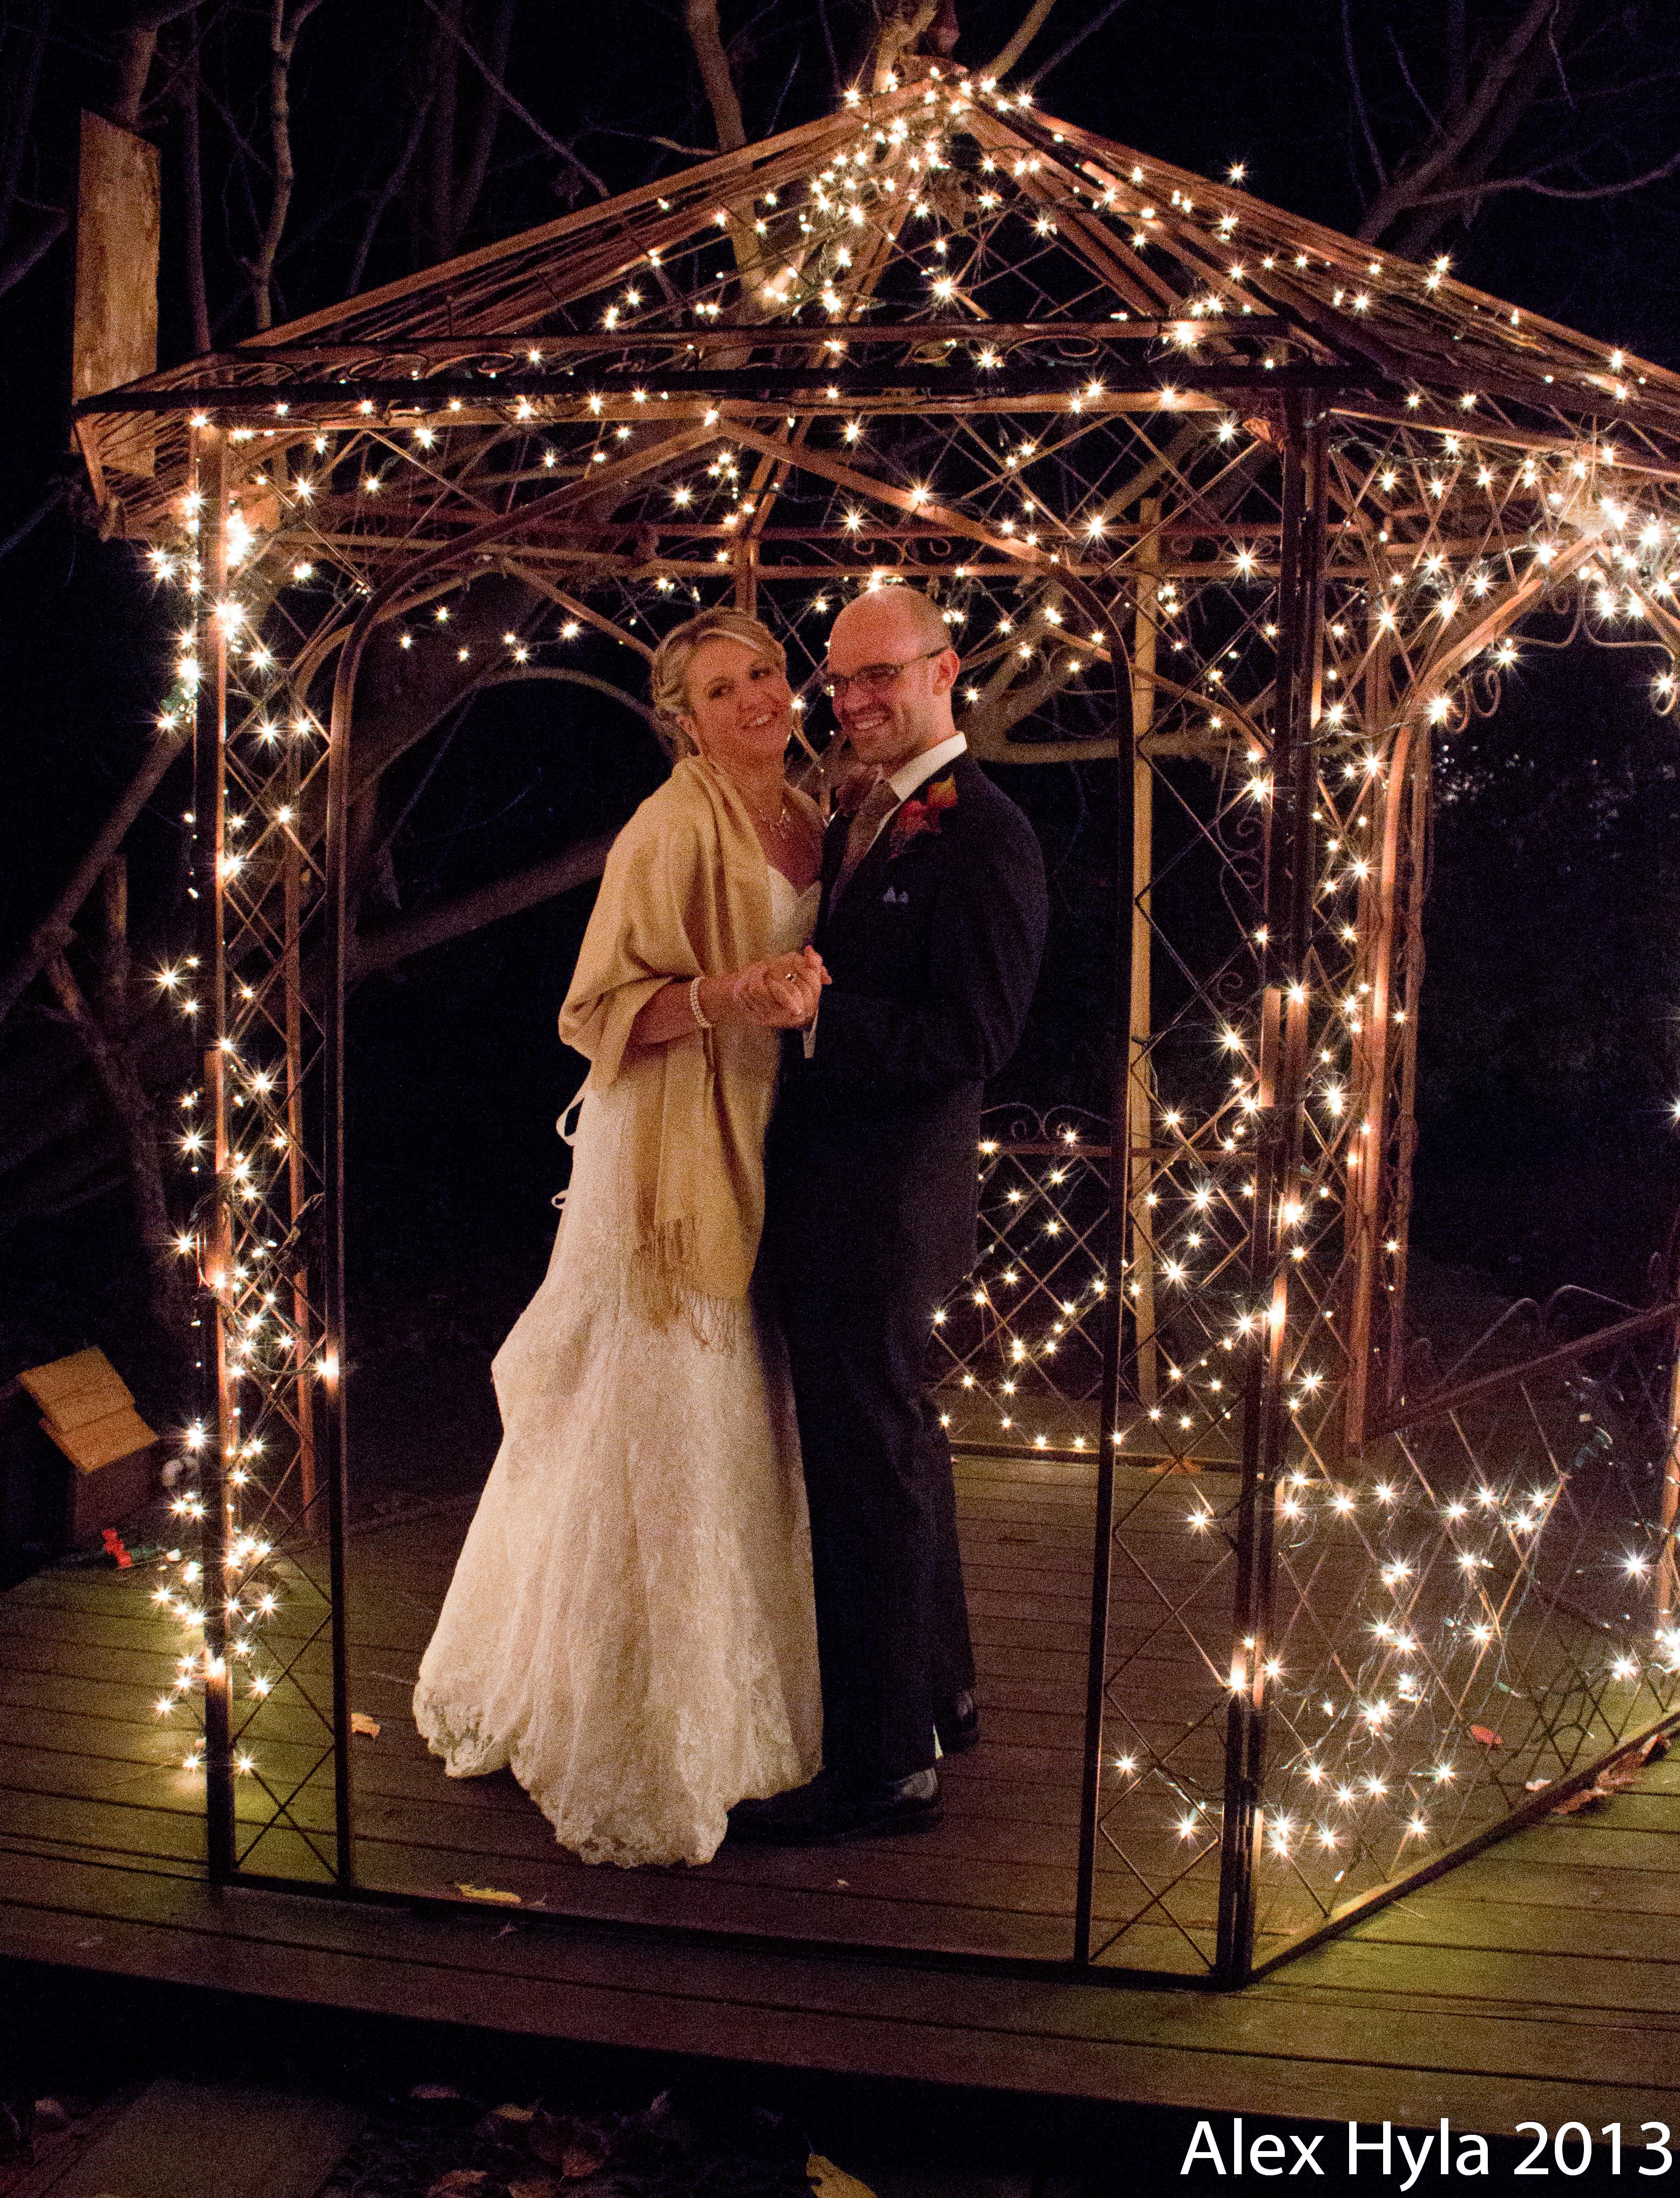 Something about the lights in the gazebo made her diamond ring glitter like a strobe light - it was really cool!